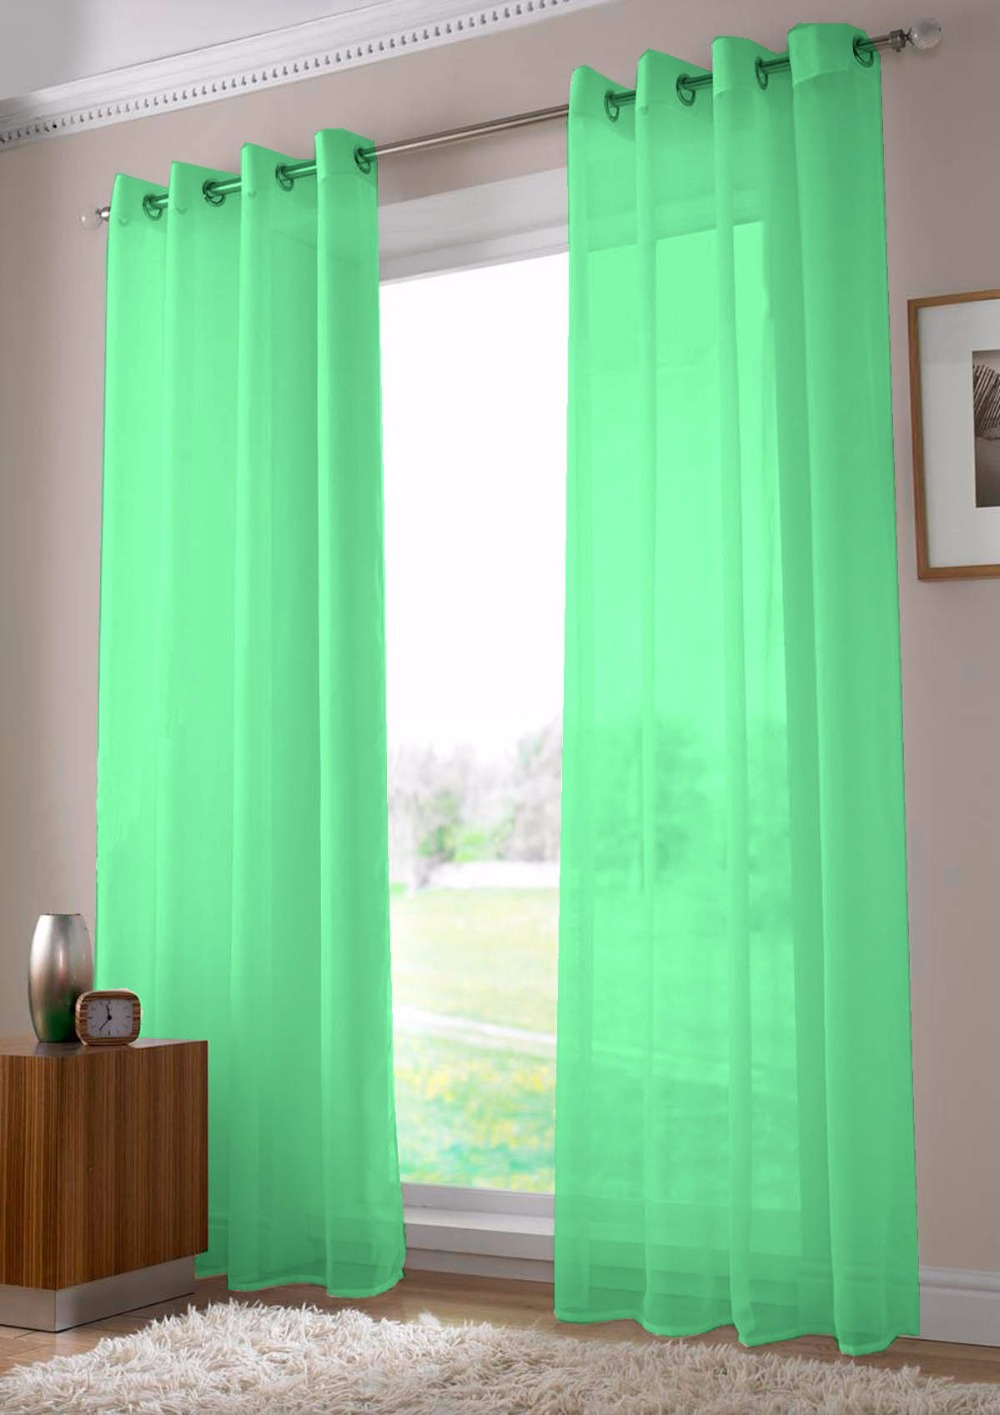 Curtains ideas teal sheer curtain panels inspiring for Sheer panel curtain ideas